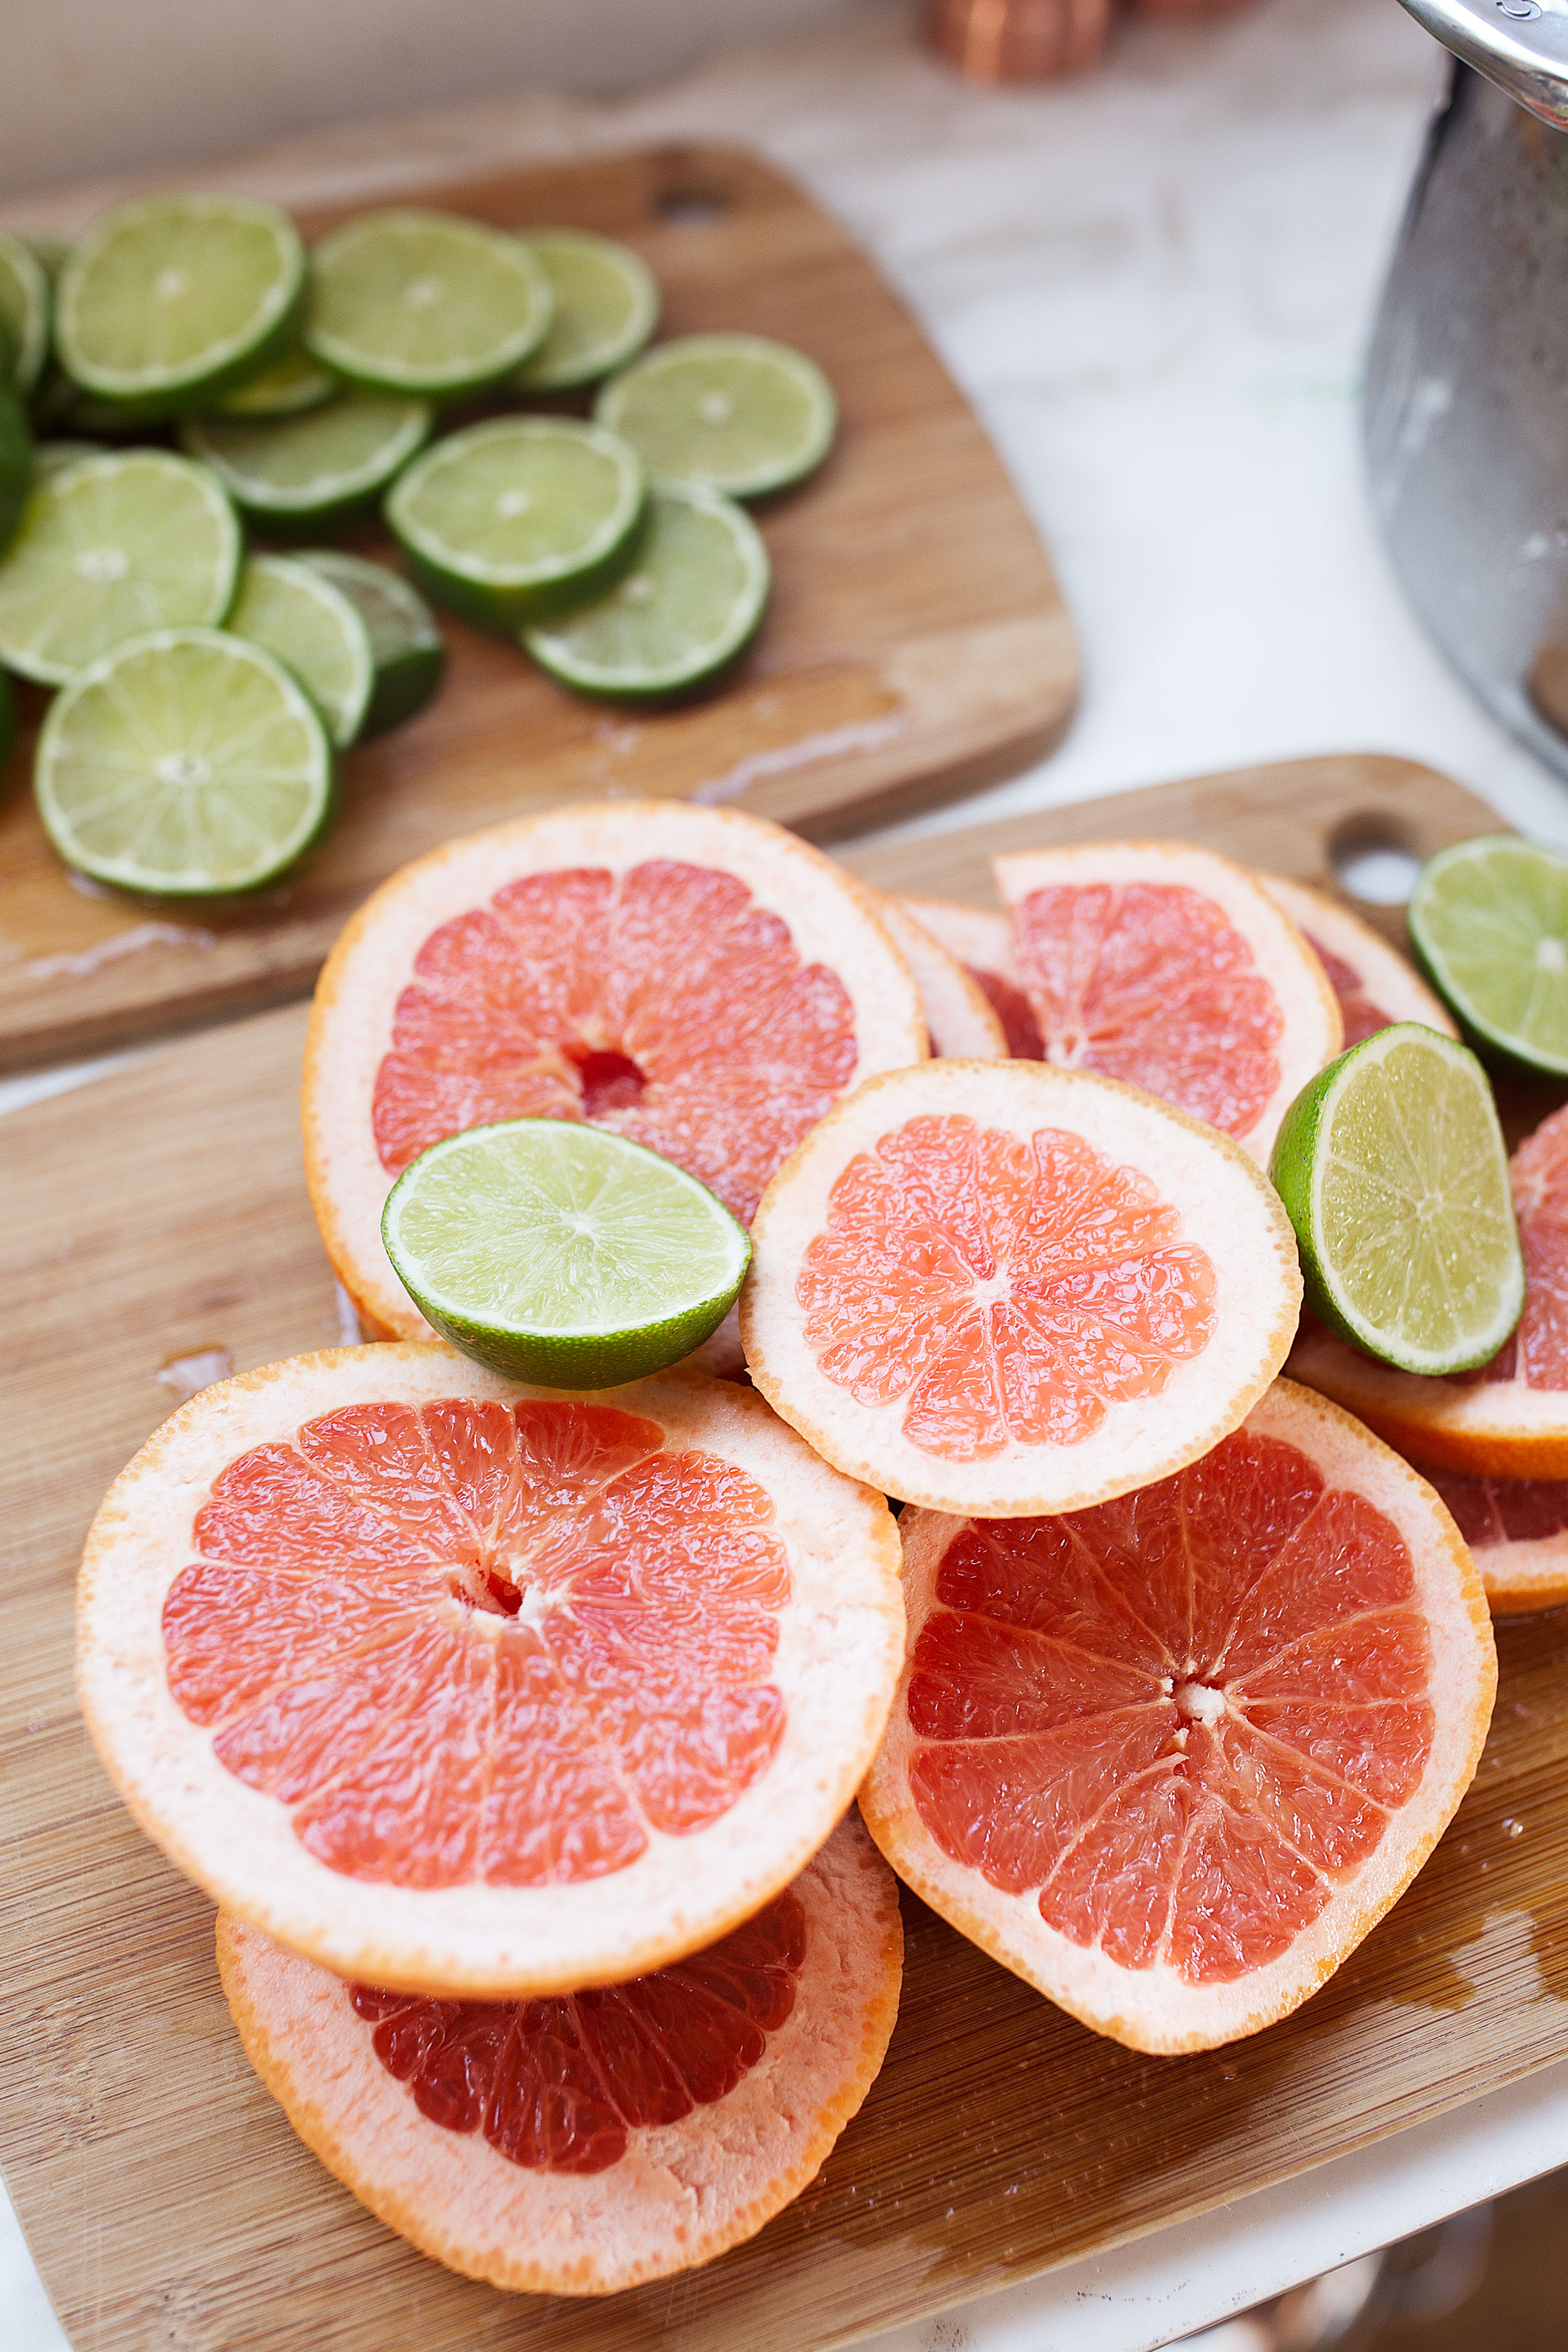 grapefruit and limes cut